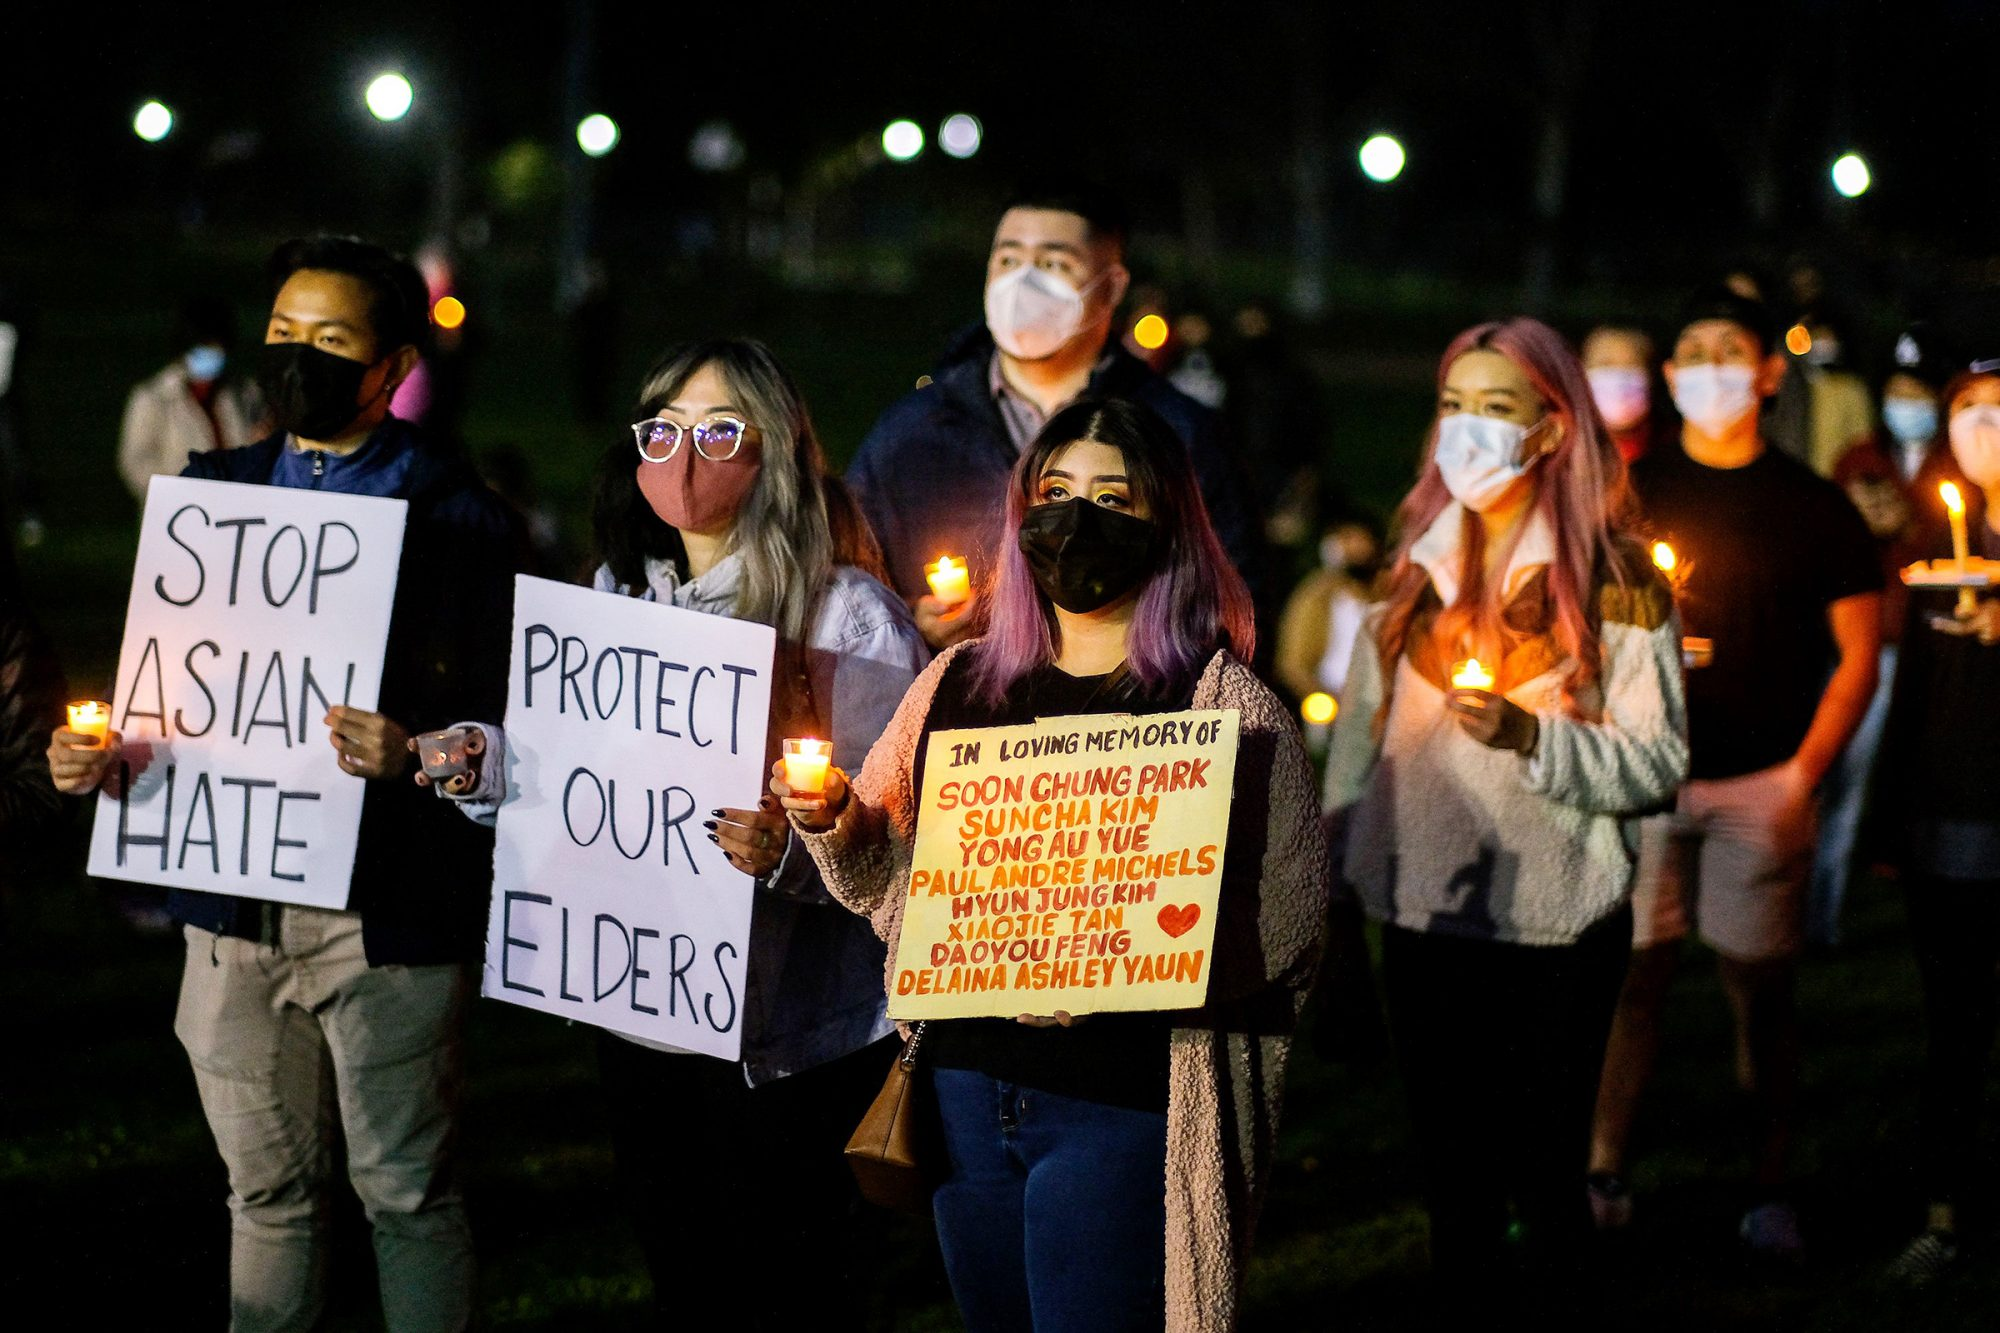 People holding candles and anti-hate signs take part in a candlelight vigil in standing up against Asian American Pacific Islander (AAPI) hate and violence, at Almansor Park in Alhambra, California, on March 20, 2021.